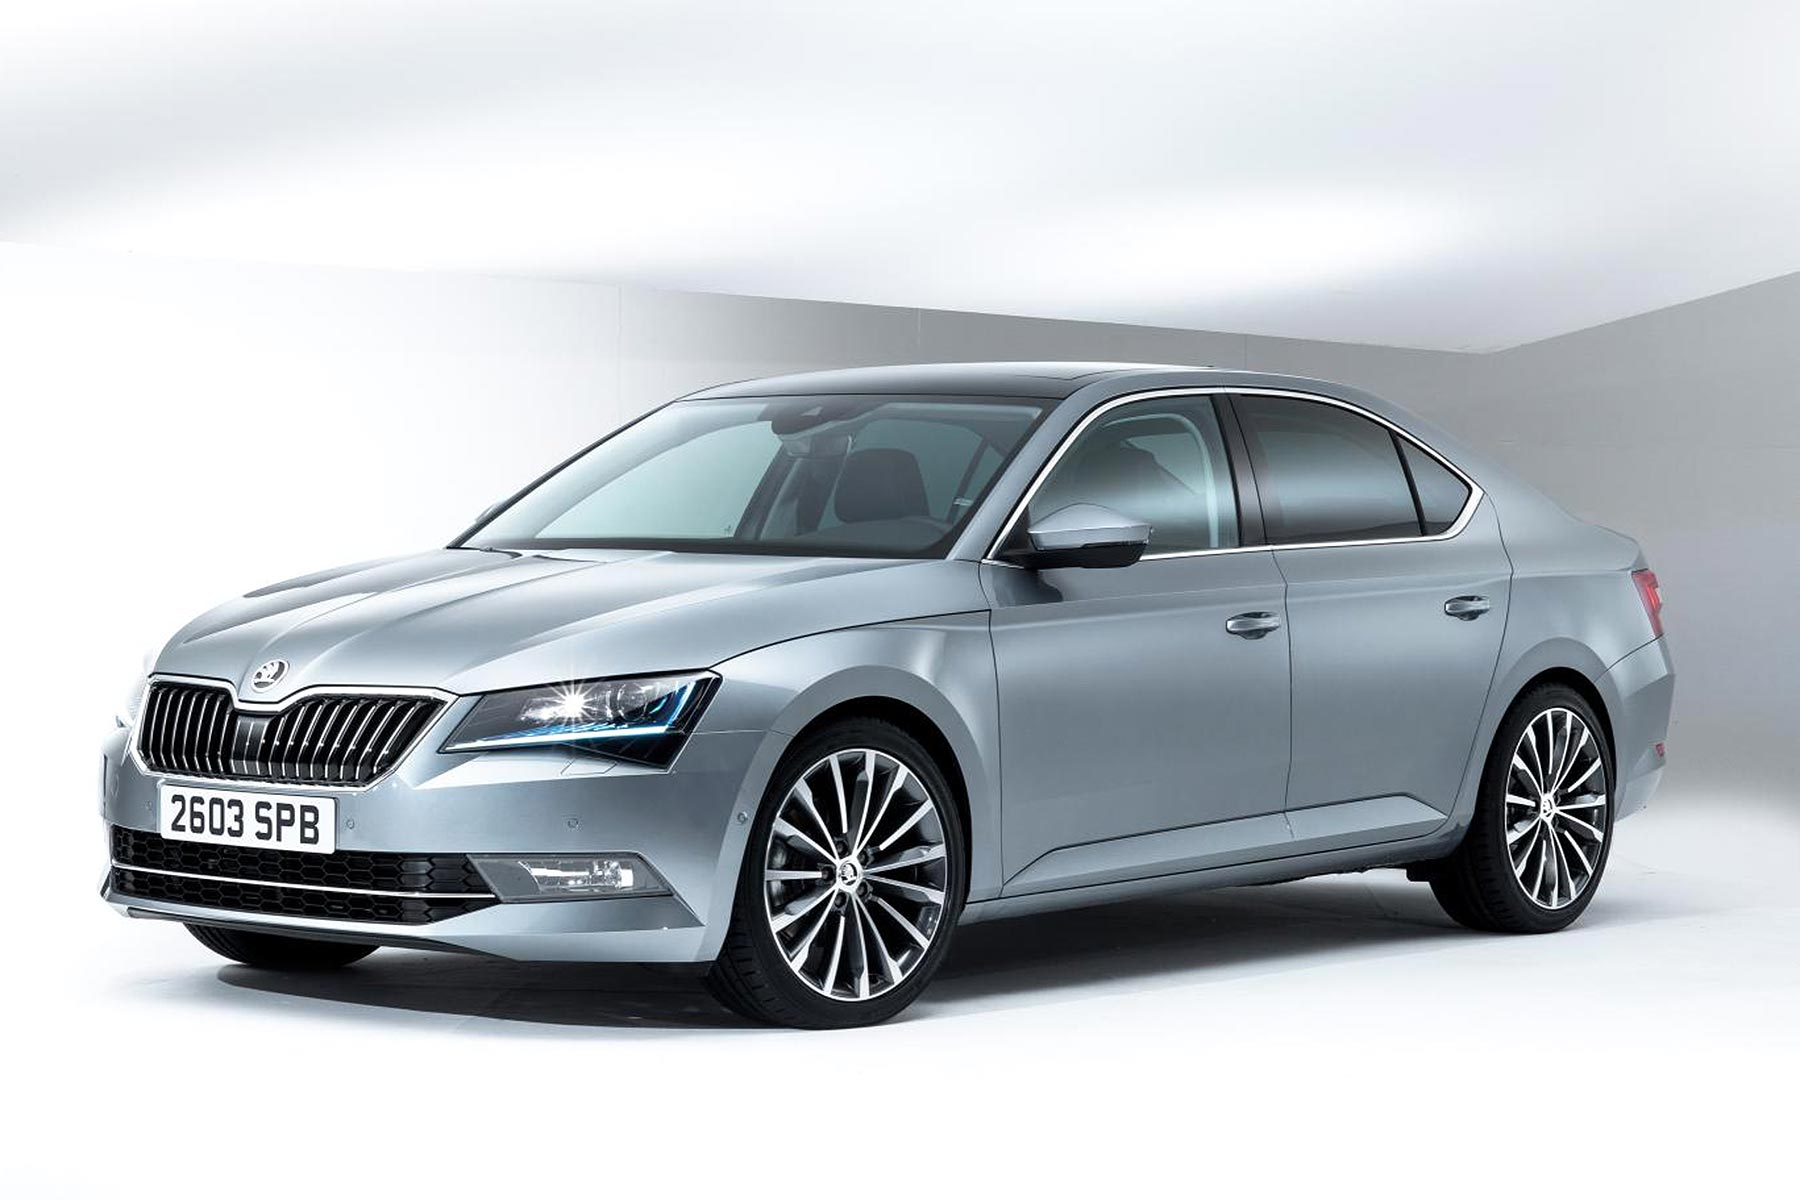 skoda superb se business launched for company drivers motoring research. Black Bedroom Furniture Sets. Home Design Ideas